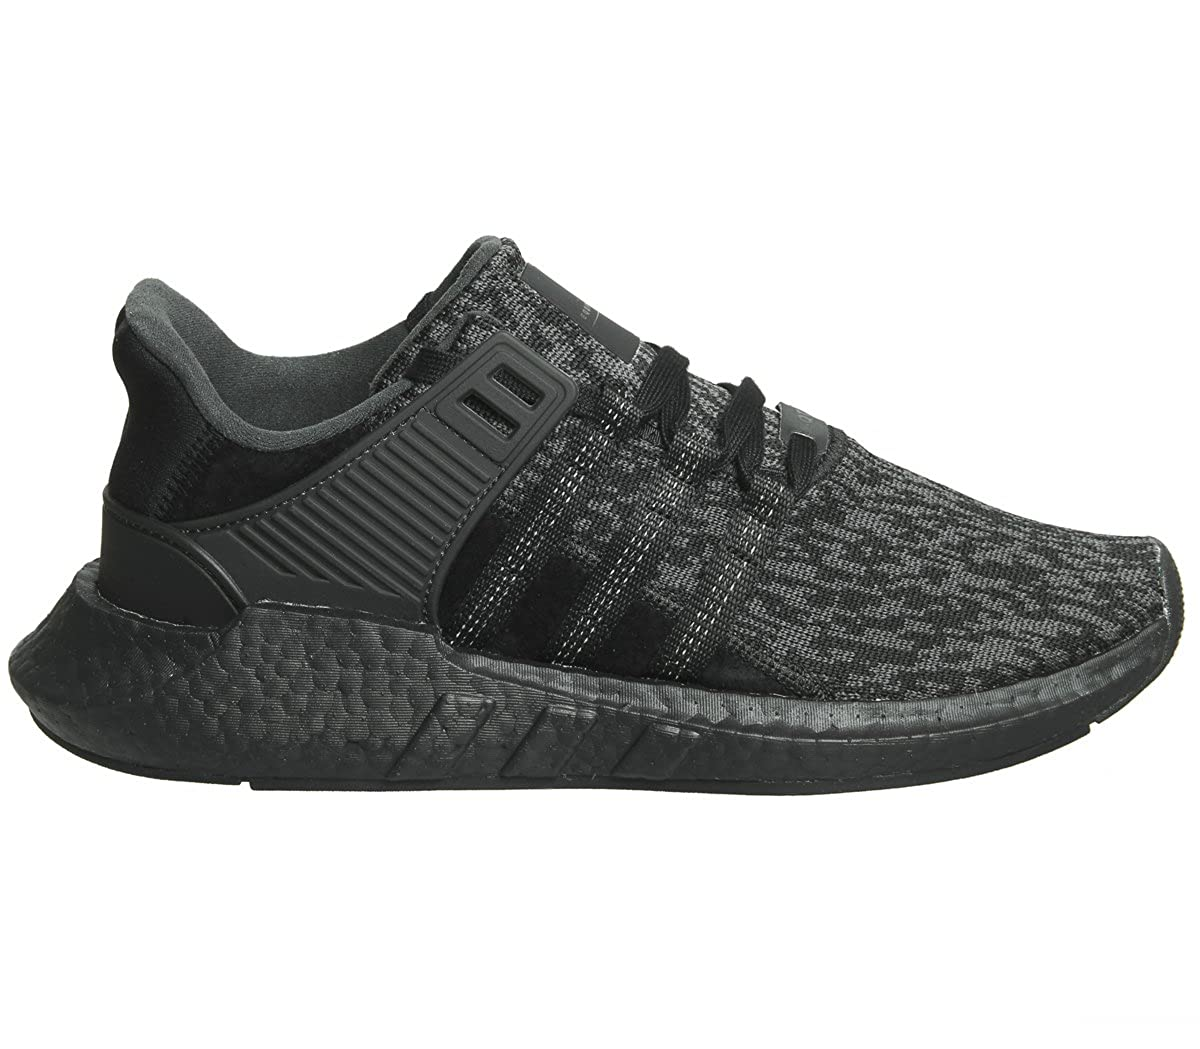 reputable site c4d26 1caed adidas Mens EQT Support 9317 By9512 Fitness Shoes Amazon.co.uk Shoes   Bags